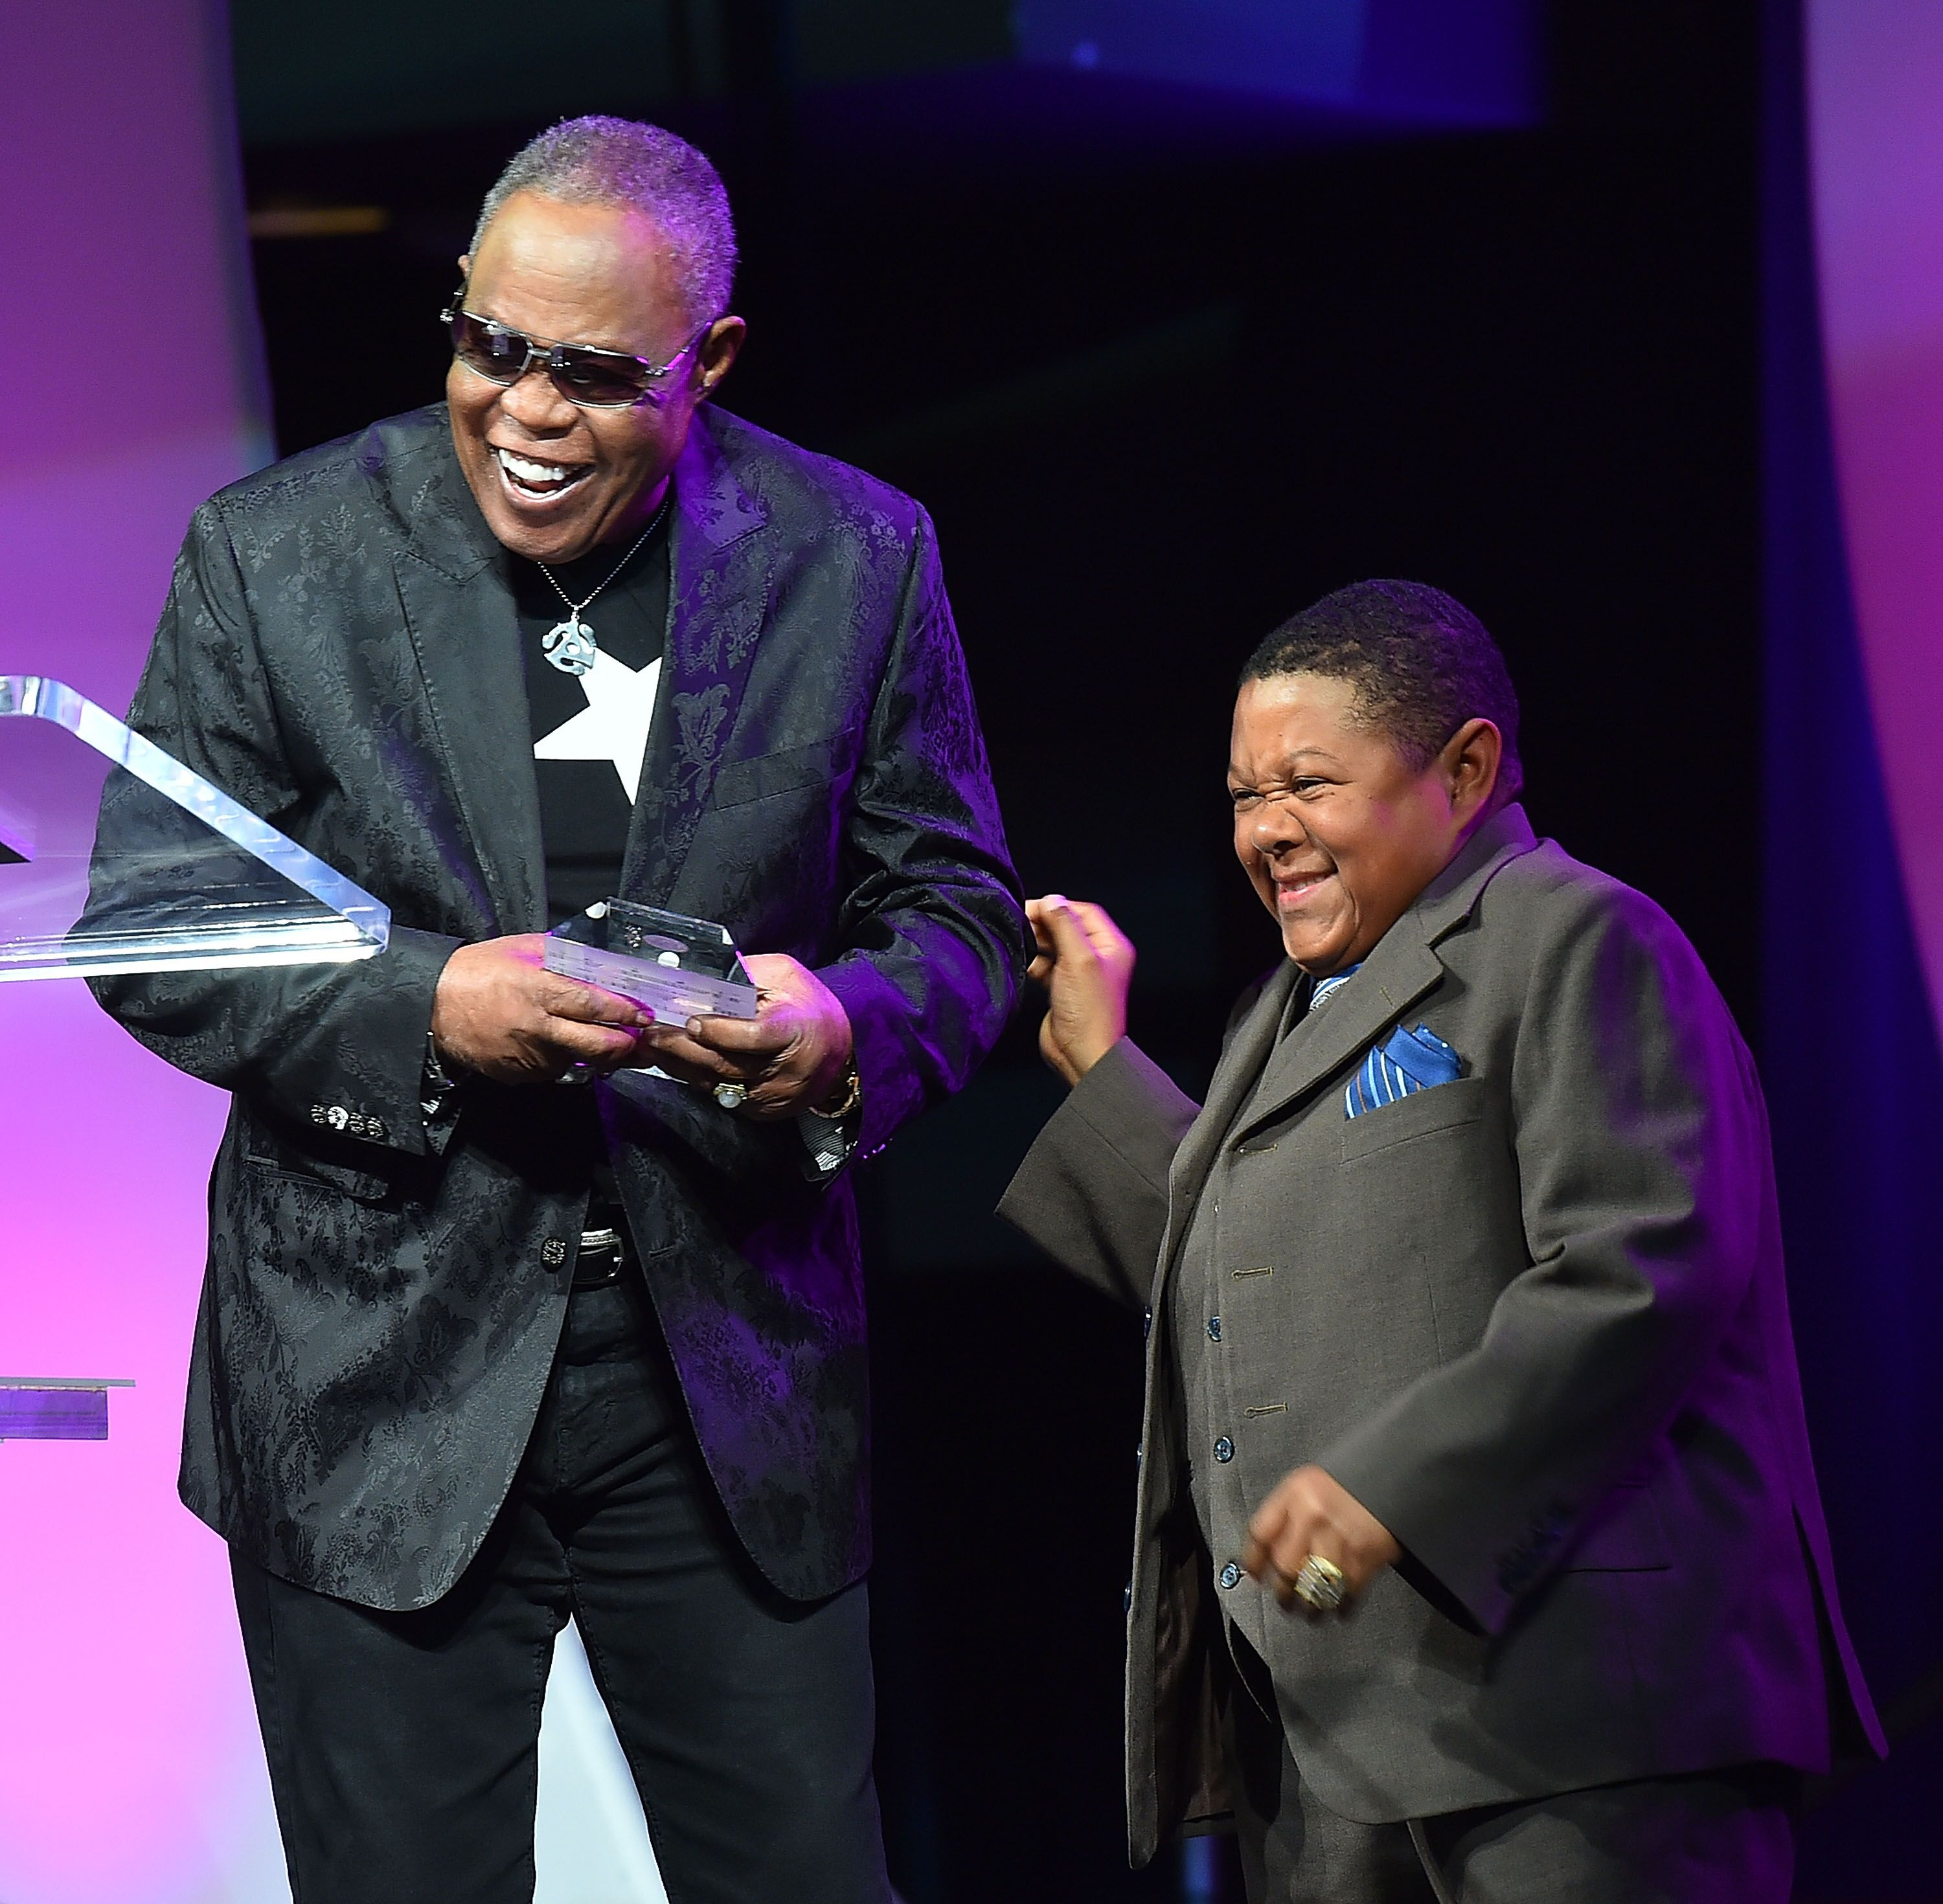 Sam Moore and actor Emmanuel Lewis onstage at Georgia Music Hall Of Fame Awards. | Source: Getty Images